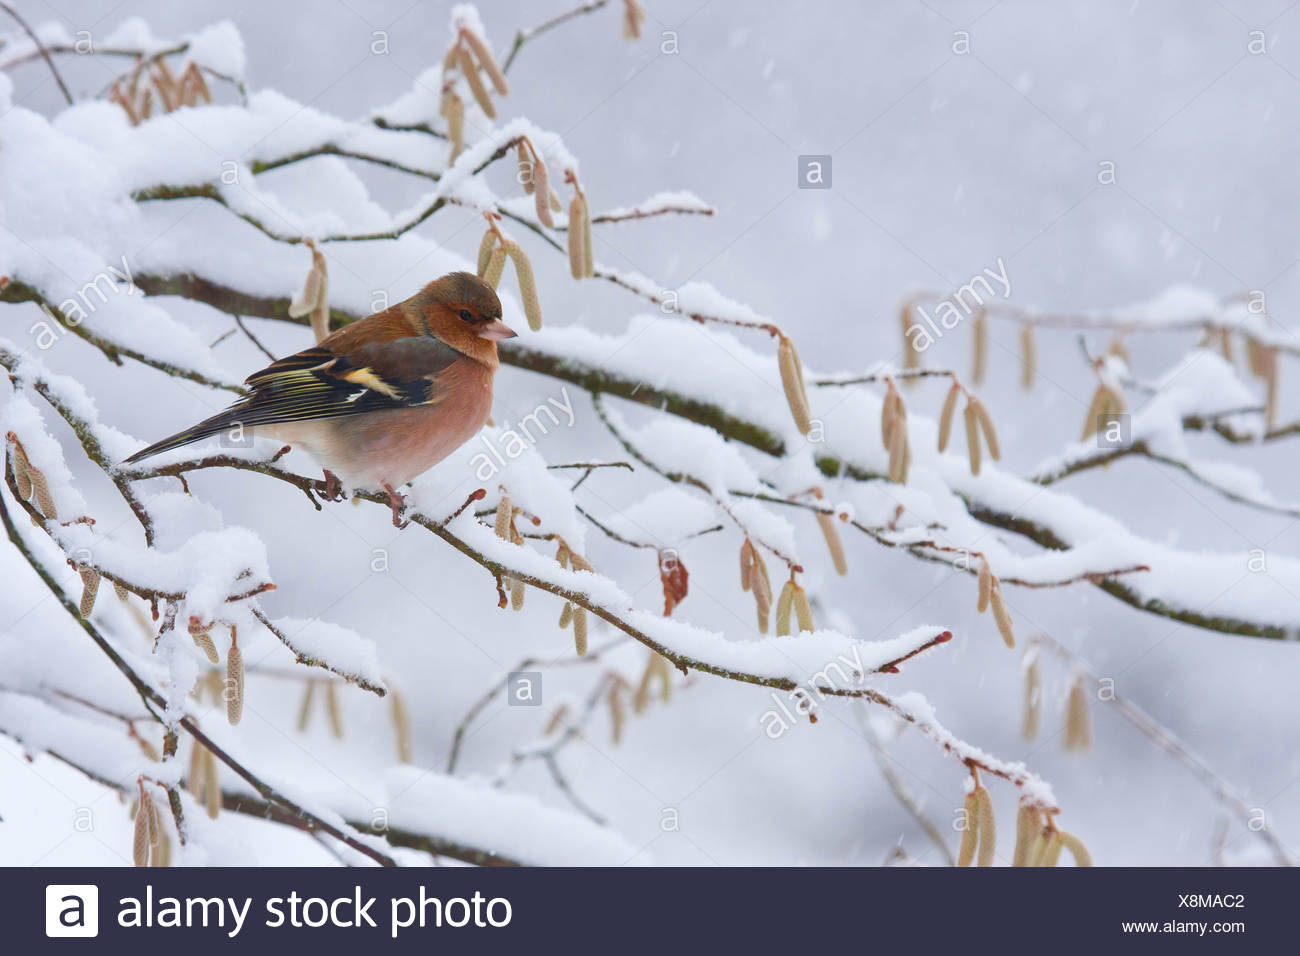 chaffinch (Fringilla coelebs), male sitting on a snowcovered branch, Germany, Rhineland-Palatinate - Stock Image